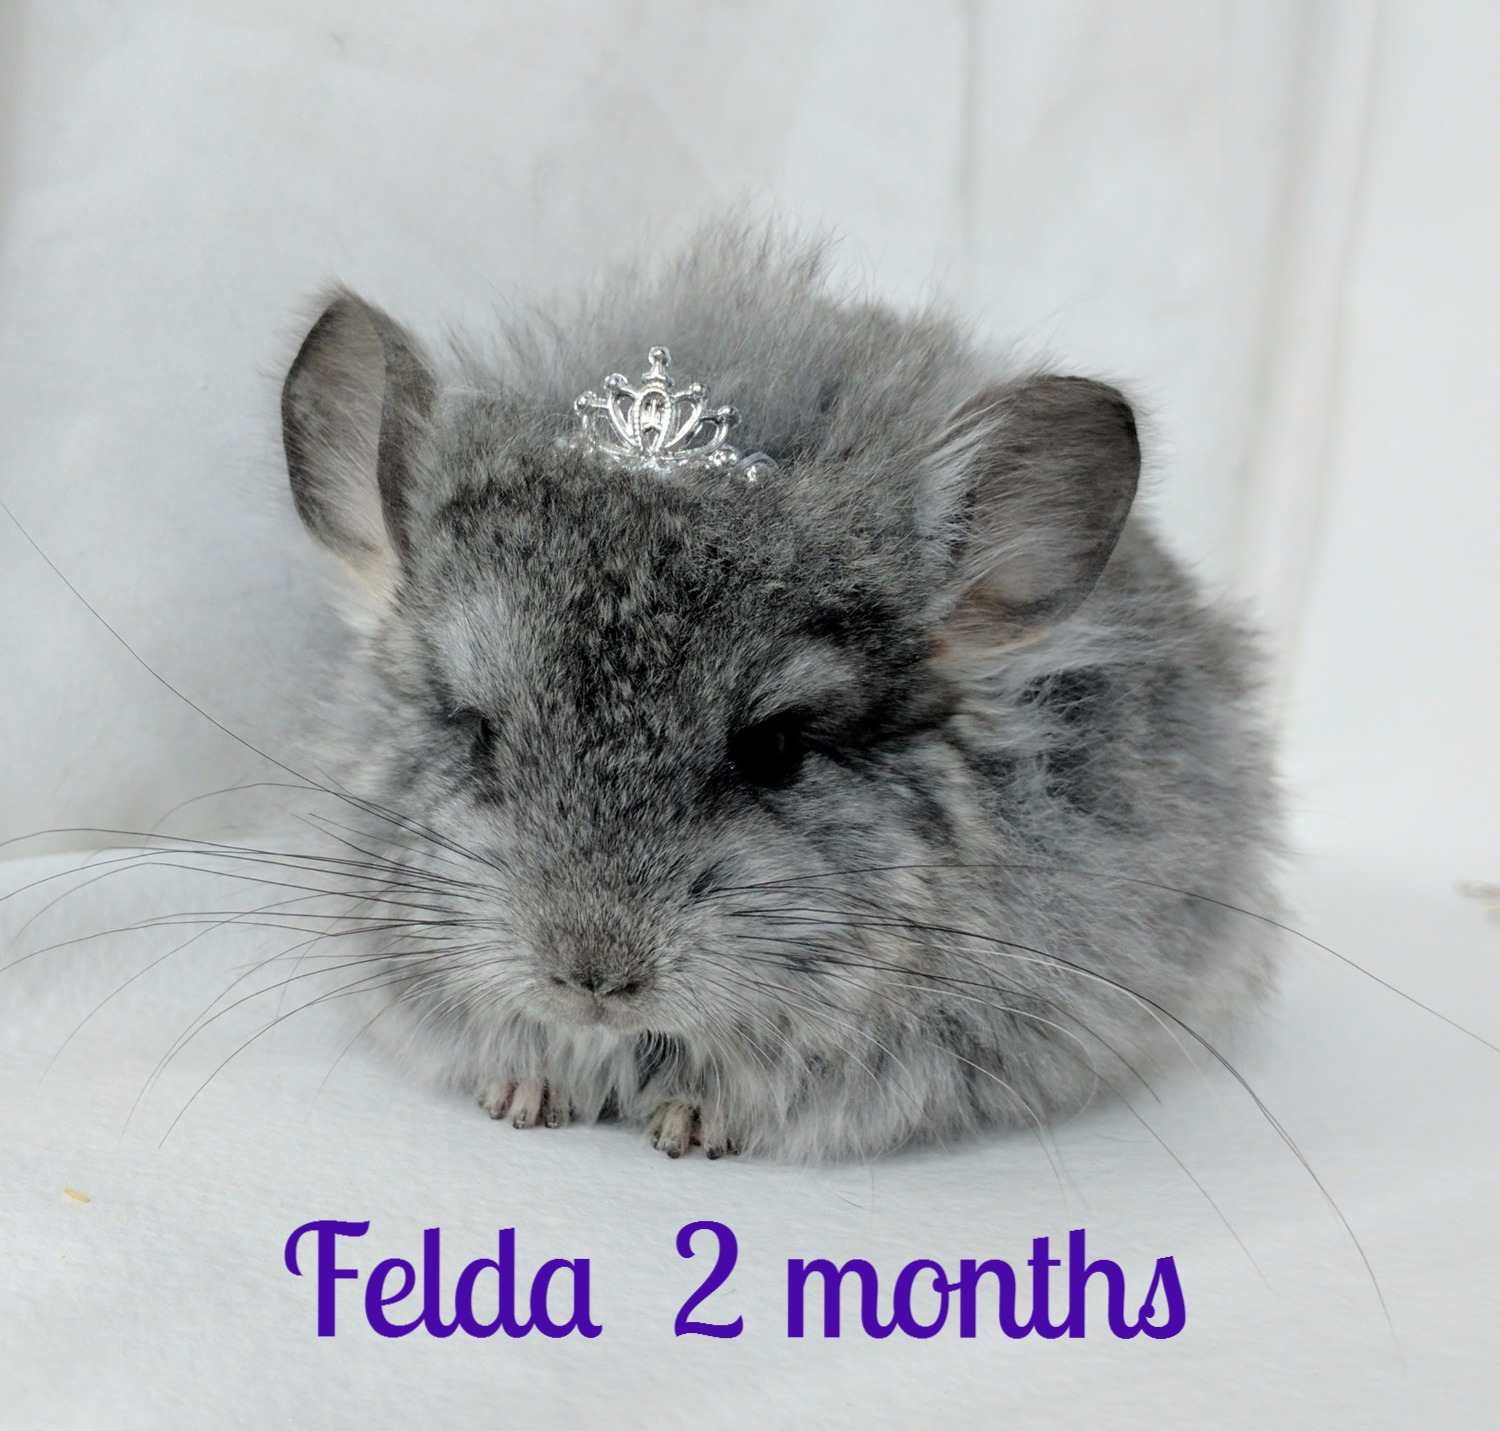 Felda at two months